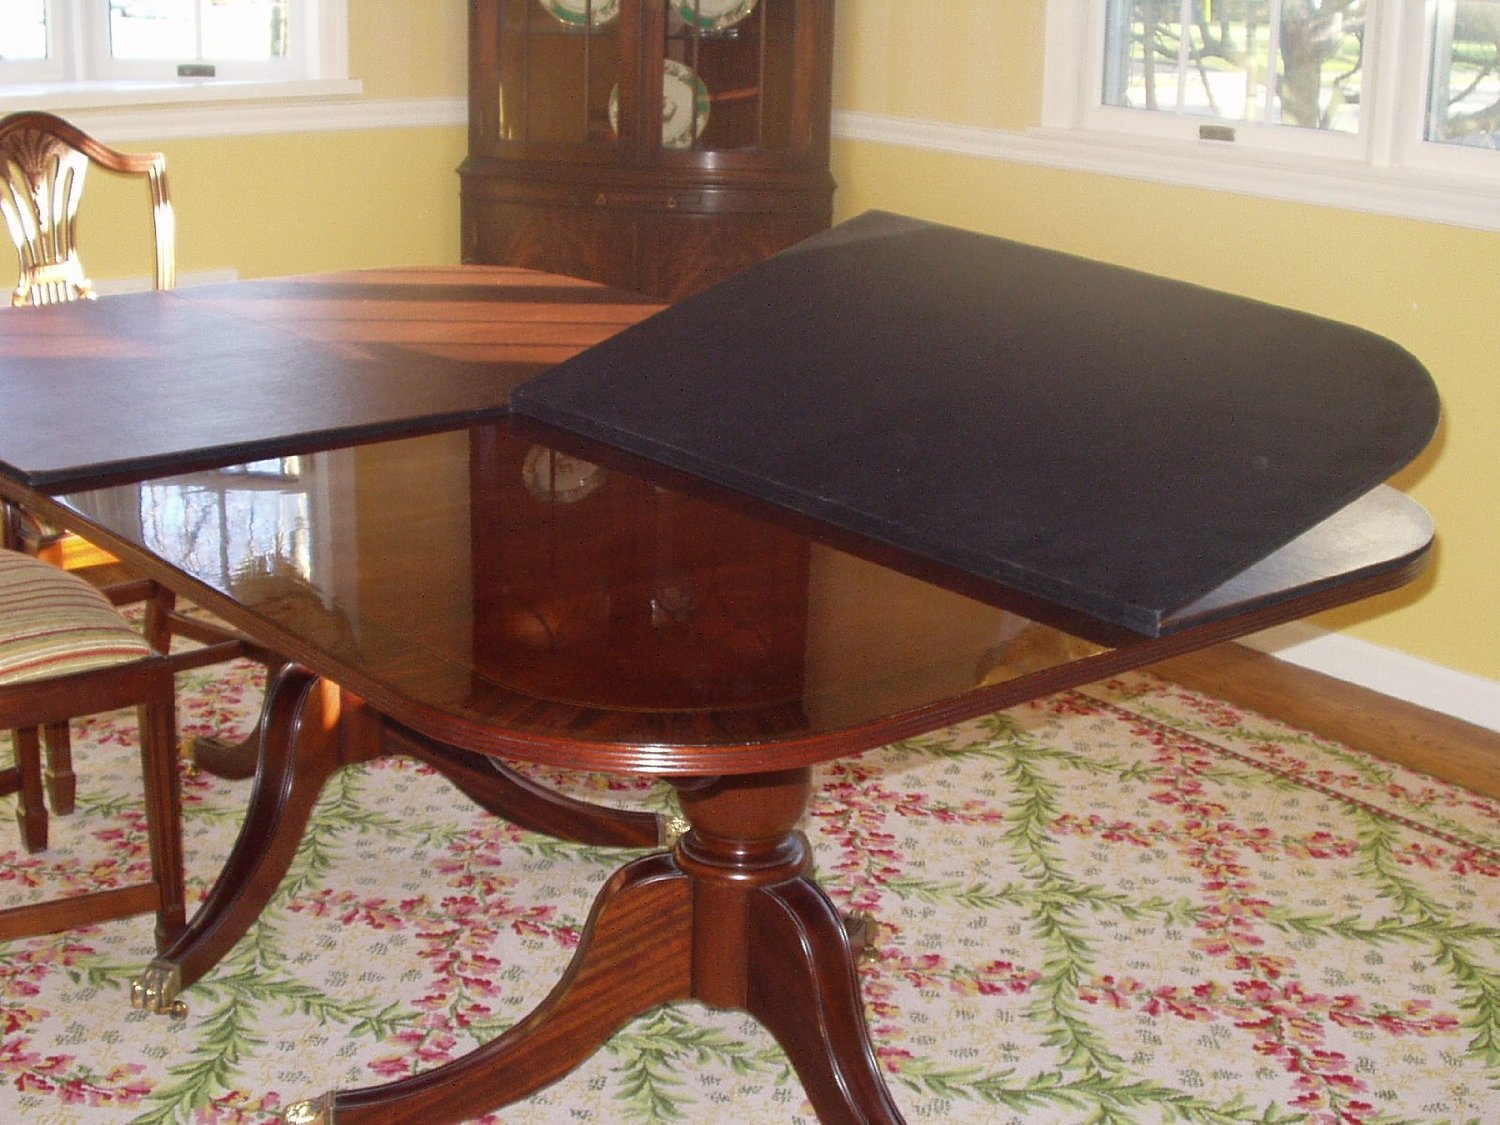 Gentil Let Us Design And Fabricate A Beautiful, Custom And Highly Functional Table  Pad That Will Look Great, While Protecting Your Furniture From Excessive  Heat Up ...